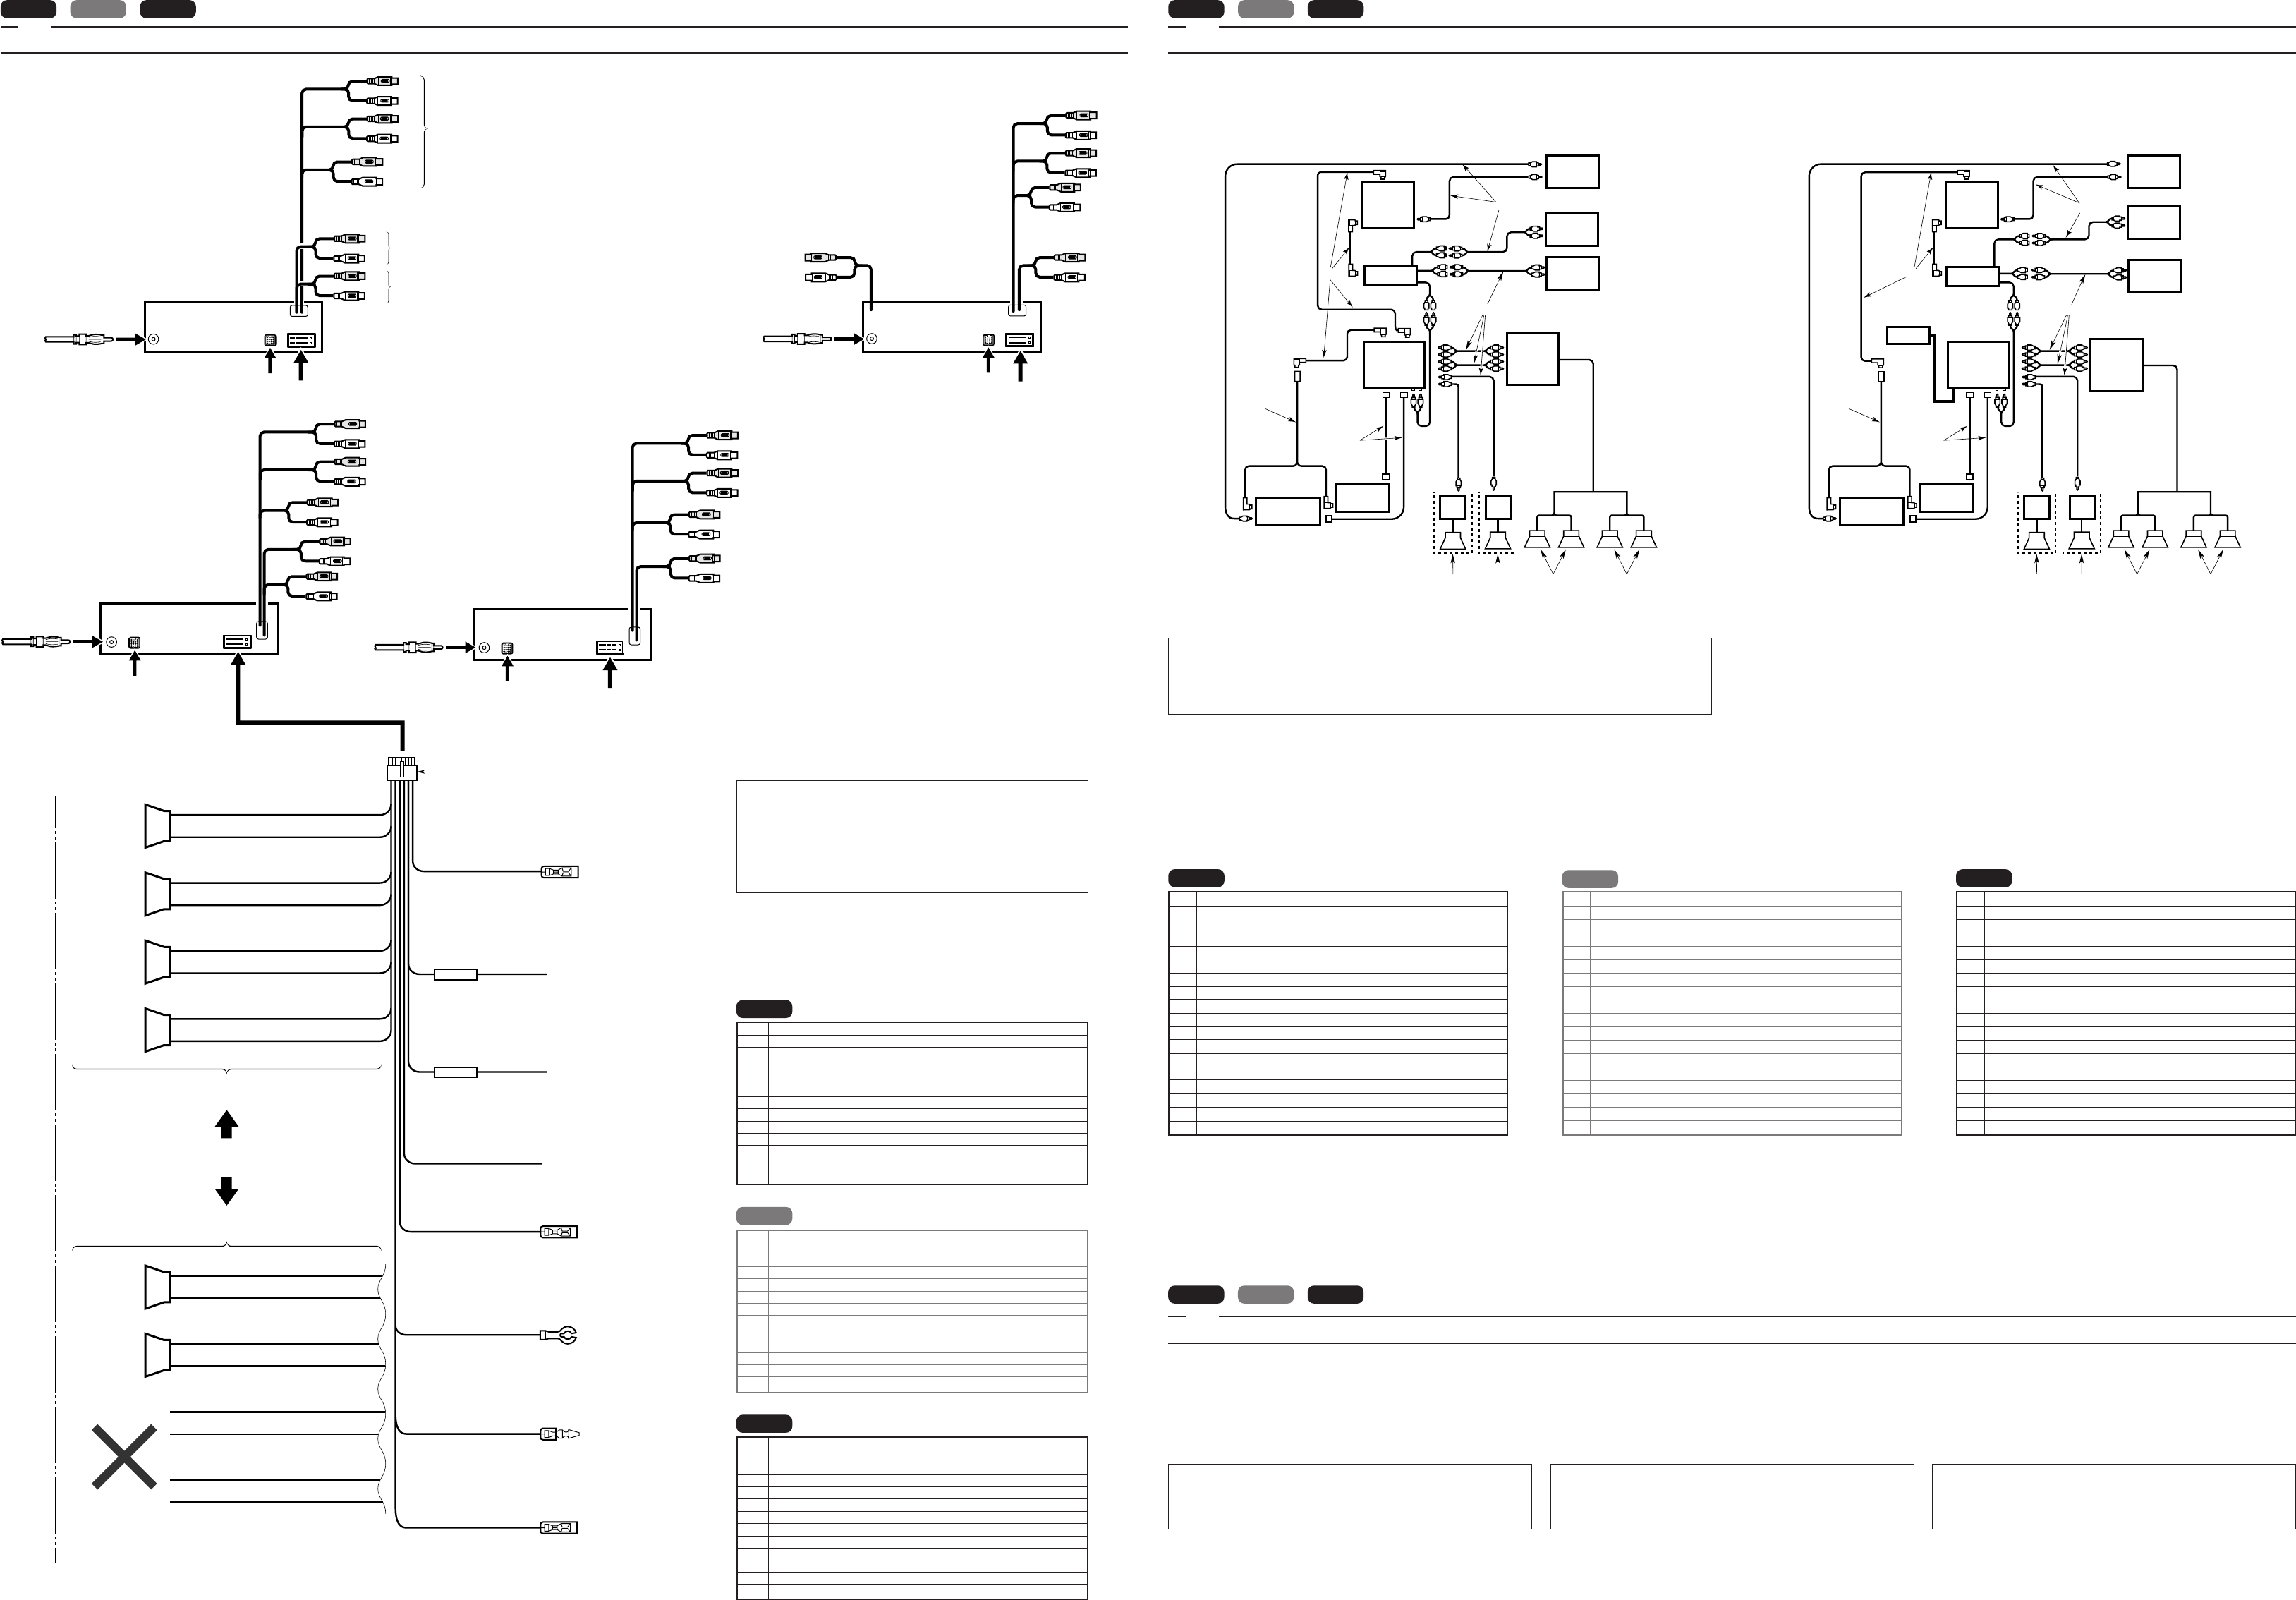 Wiring Diagram For Clarion Drb5475 34 Images Harness Head Unit 74bf1a7c 3554 4464 Bbee 4939dfad1056 Bg2 Page 2 Of Car Stereo System Dxz846mc User Guide